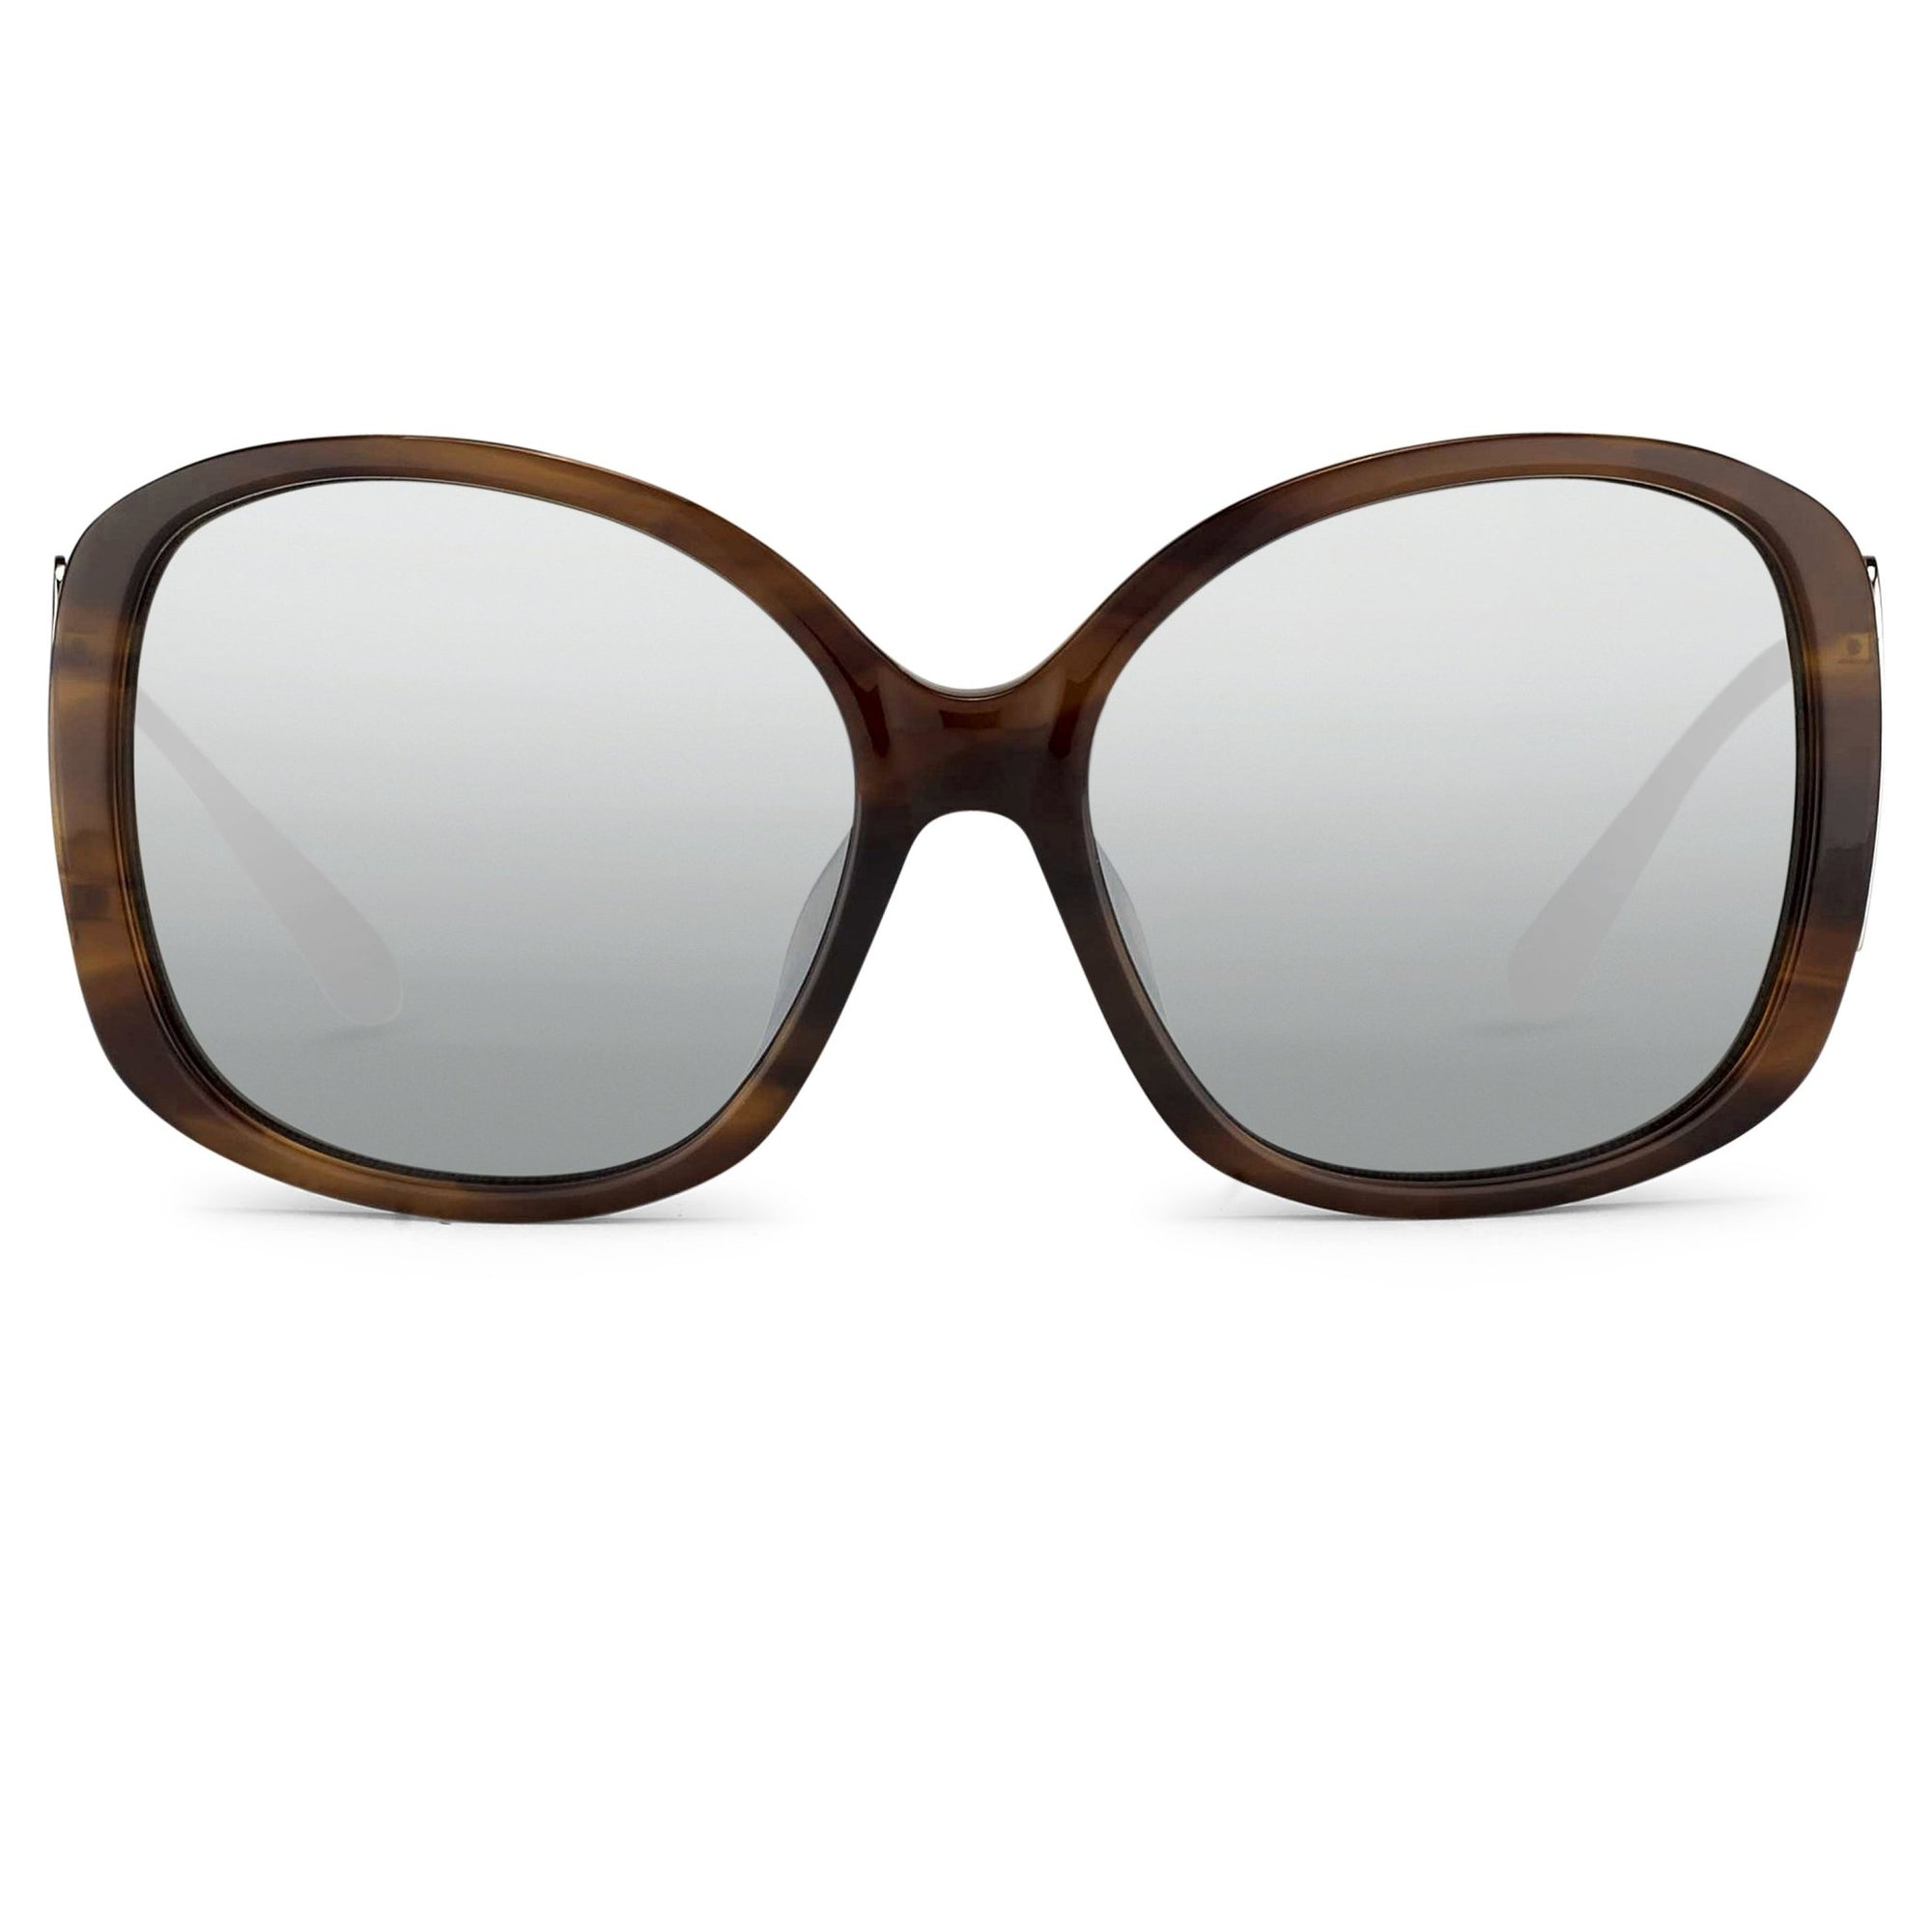 Prabal Gurung Sunglasses Oversized Female Amaretto Brown Frame Category 3 Silver Mirros Lenses PG23C3SUN - Watches & Crystals